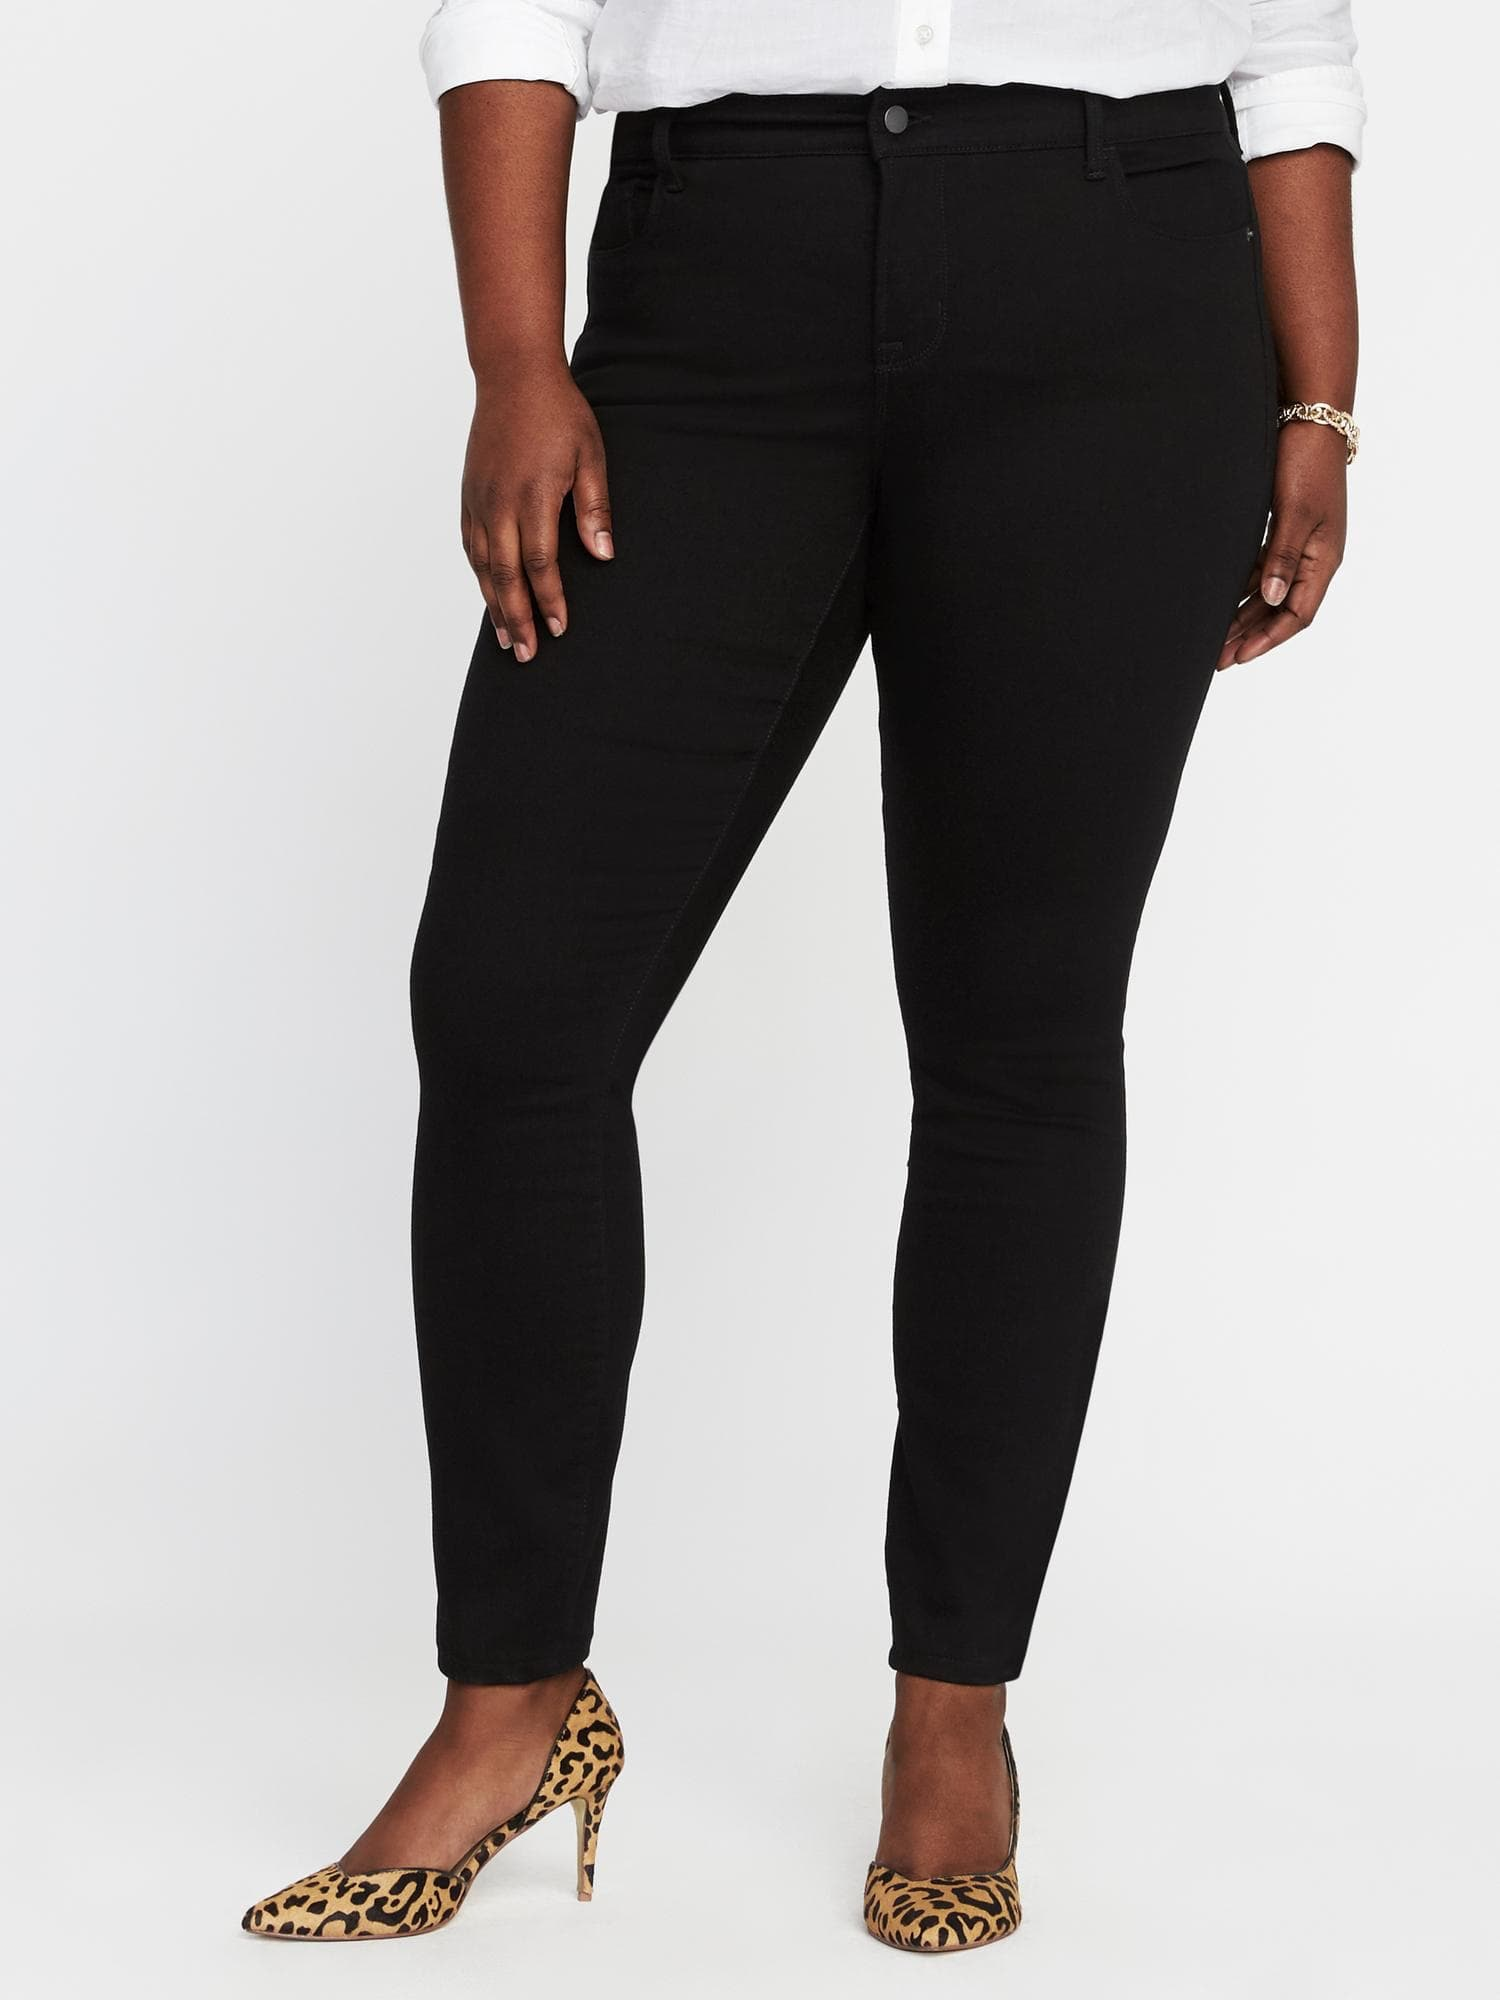 a5d9f89431bbf The Best Plus-Size Jeans According To 8 Fashion Influencers